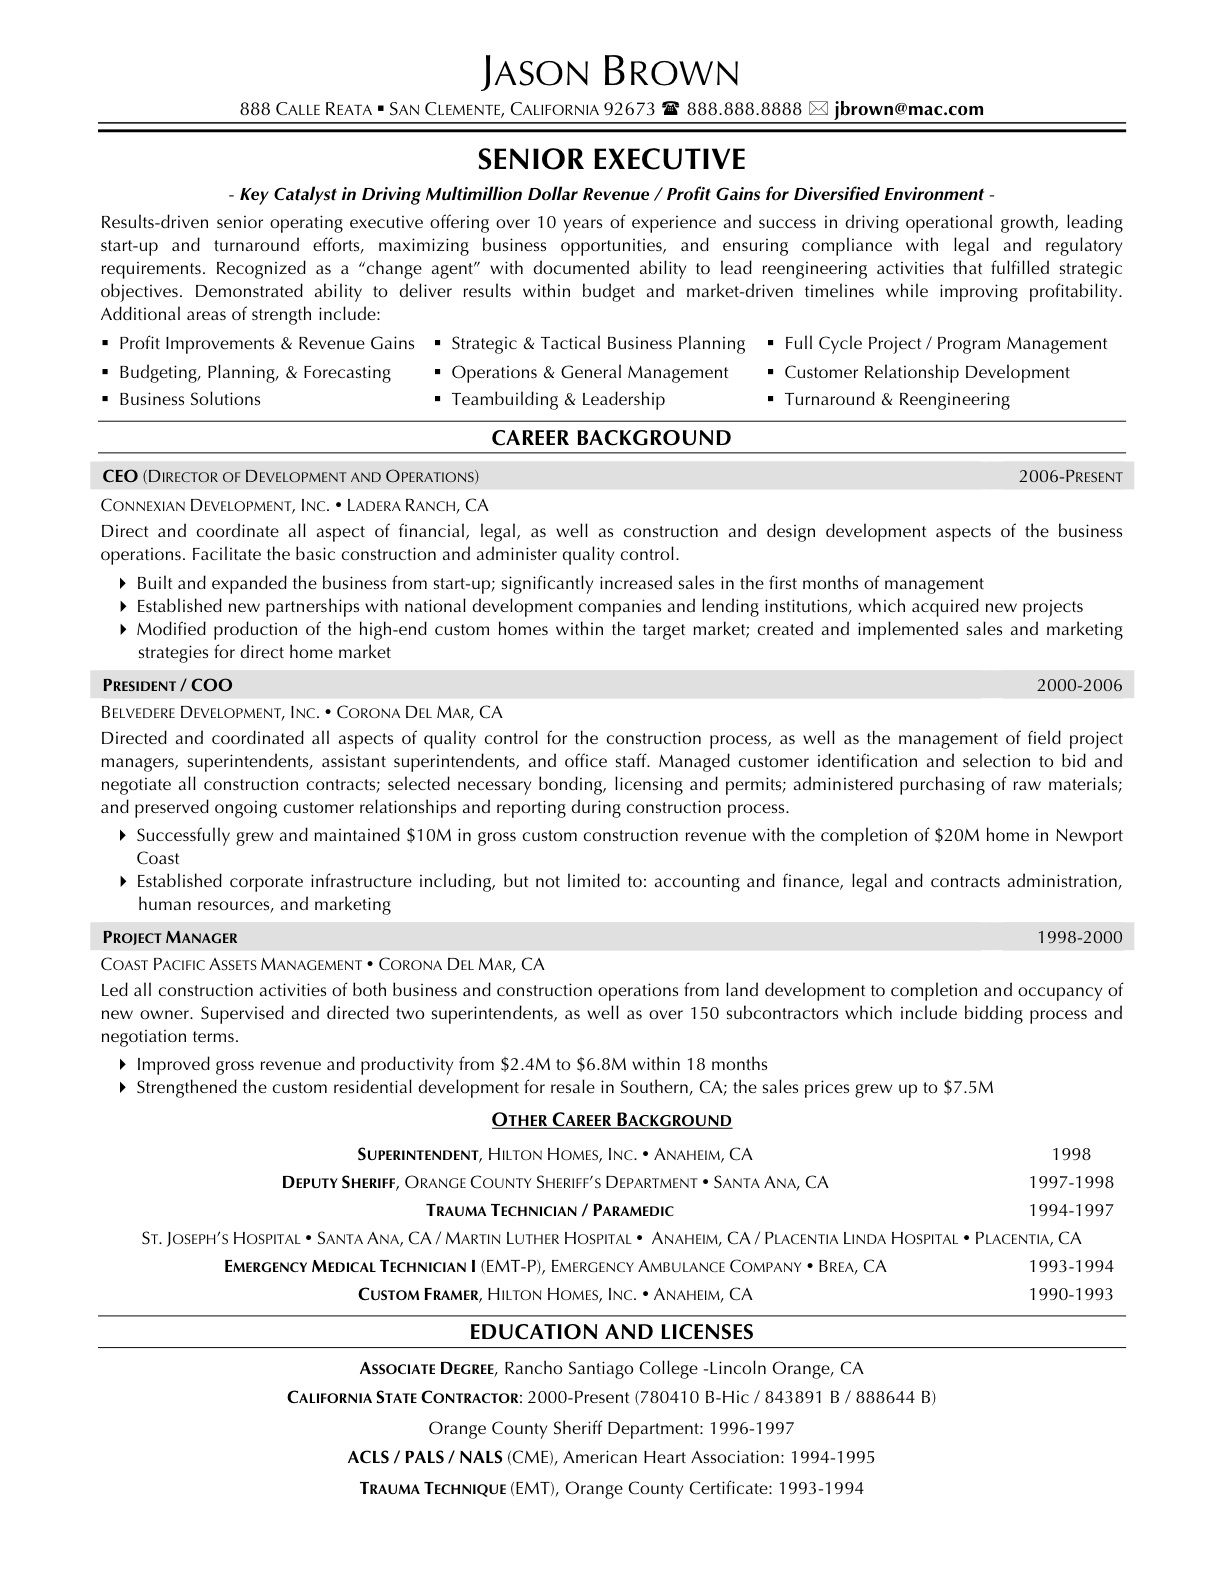 Free Senior Operations Executive Resume 707 topresume